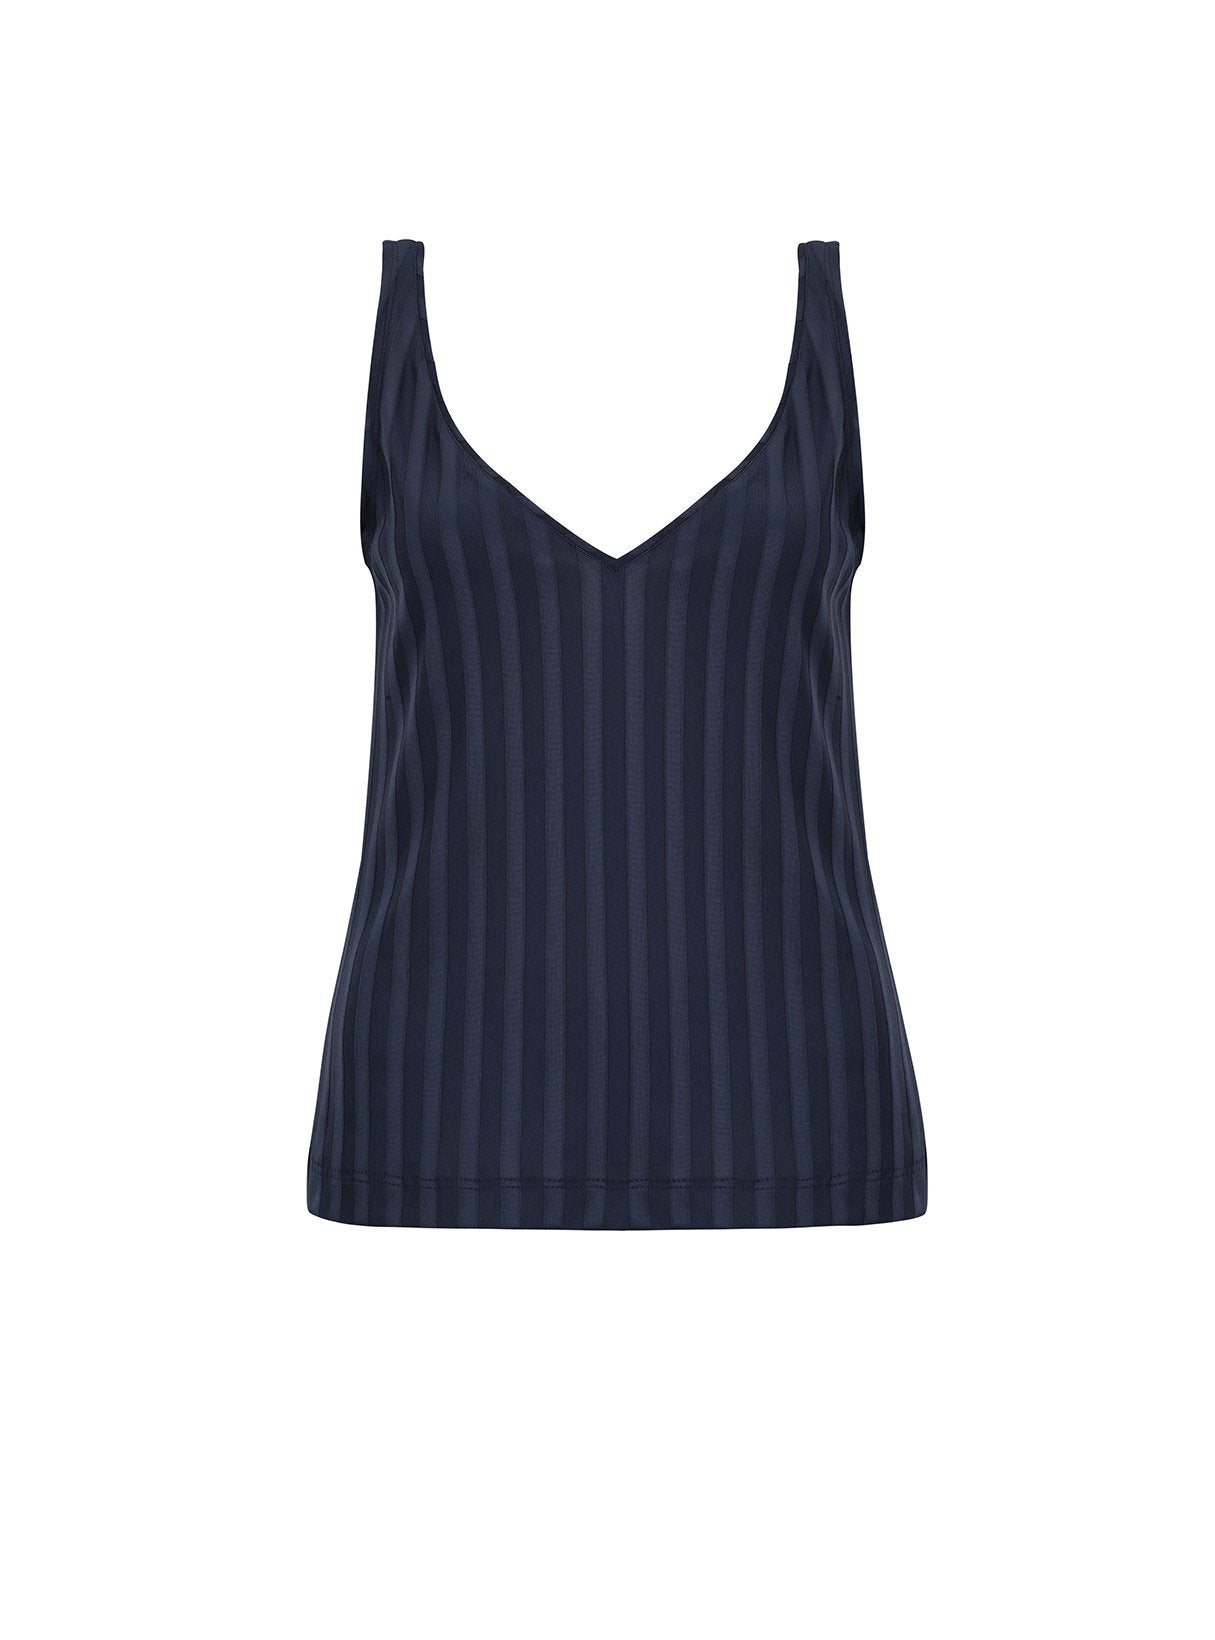 Top lucca - outtaspace blue